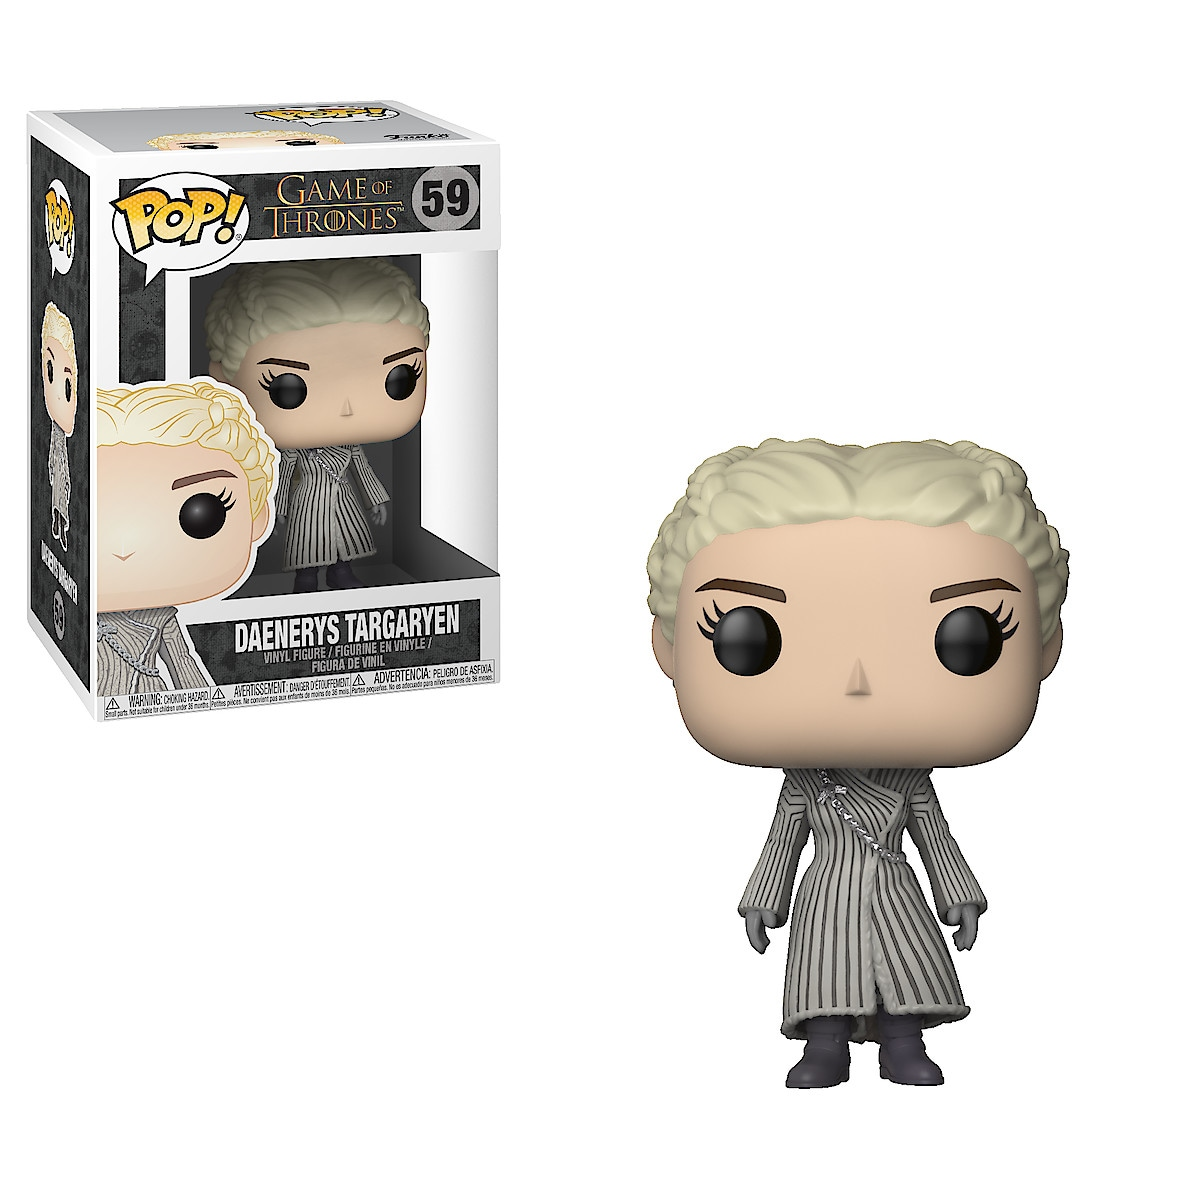 Funko Pop! Vinyl Game of Thrones